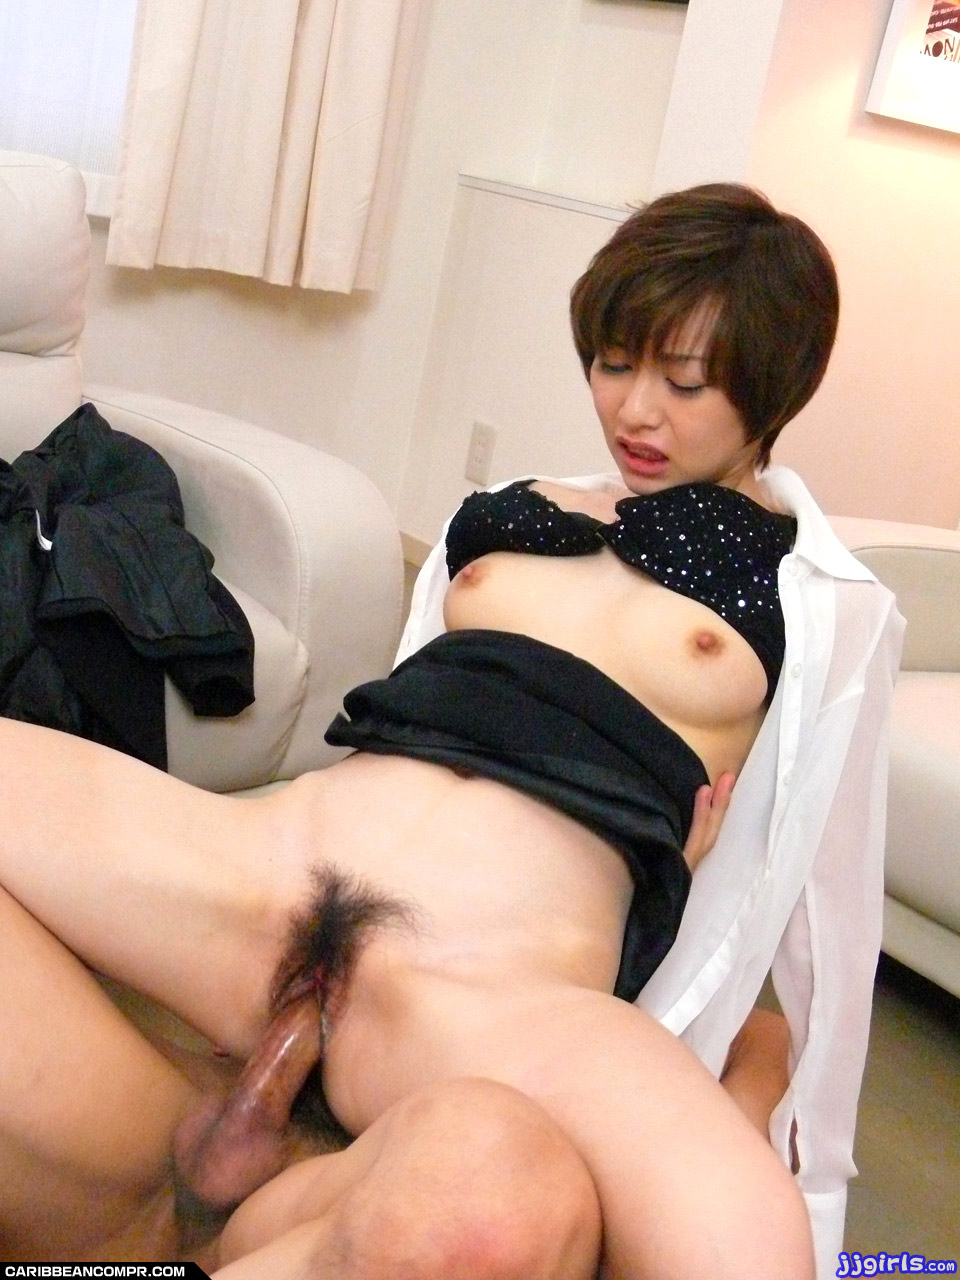 Akina hara gets two men to fuck her hard 10